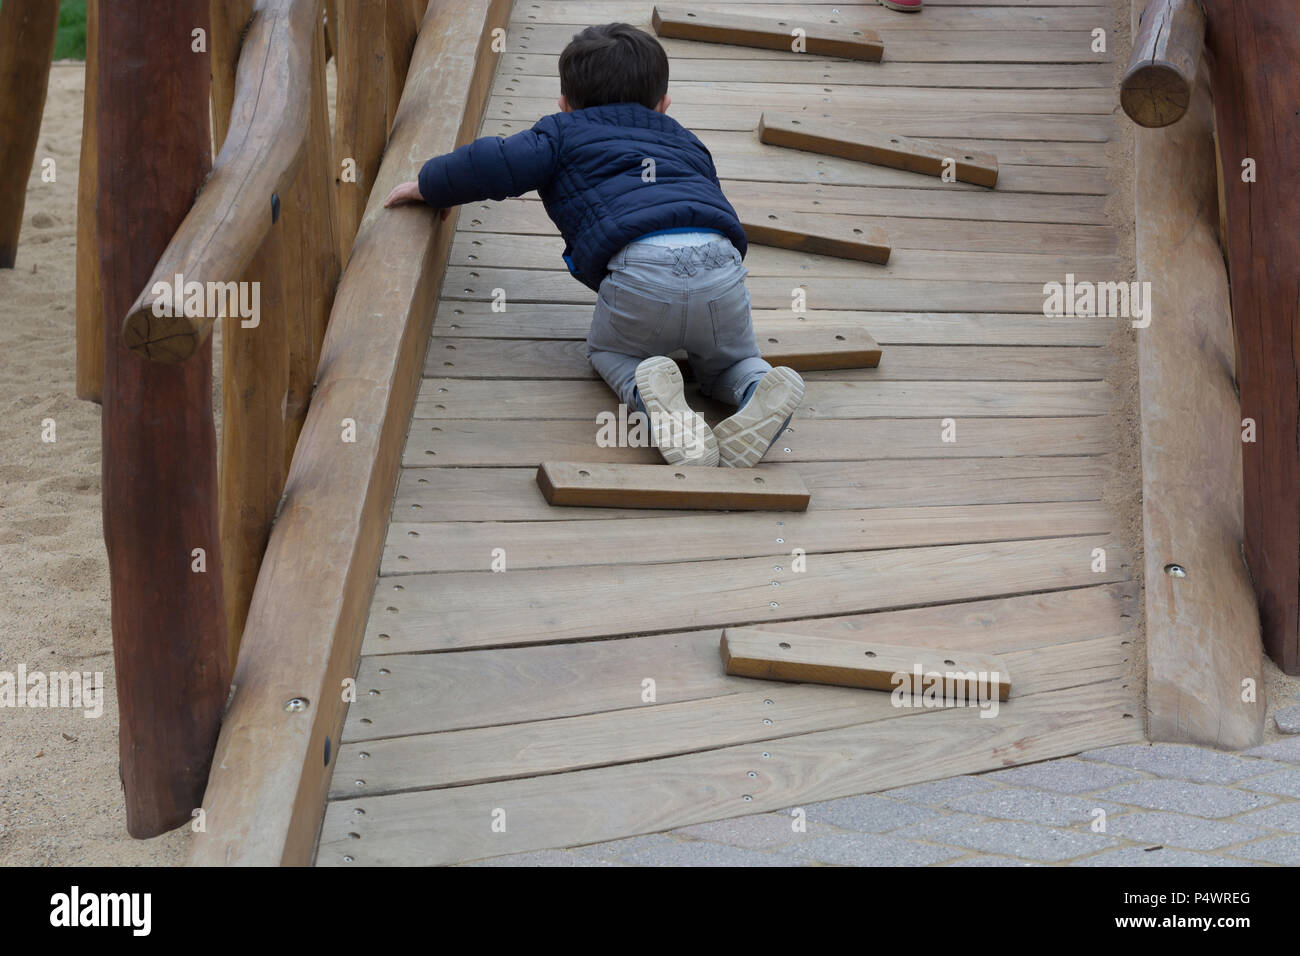 Happy young child having fun on a climbing frame outdoor - Stock Image